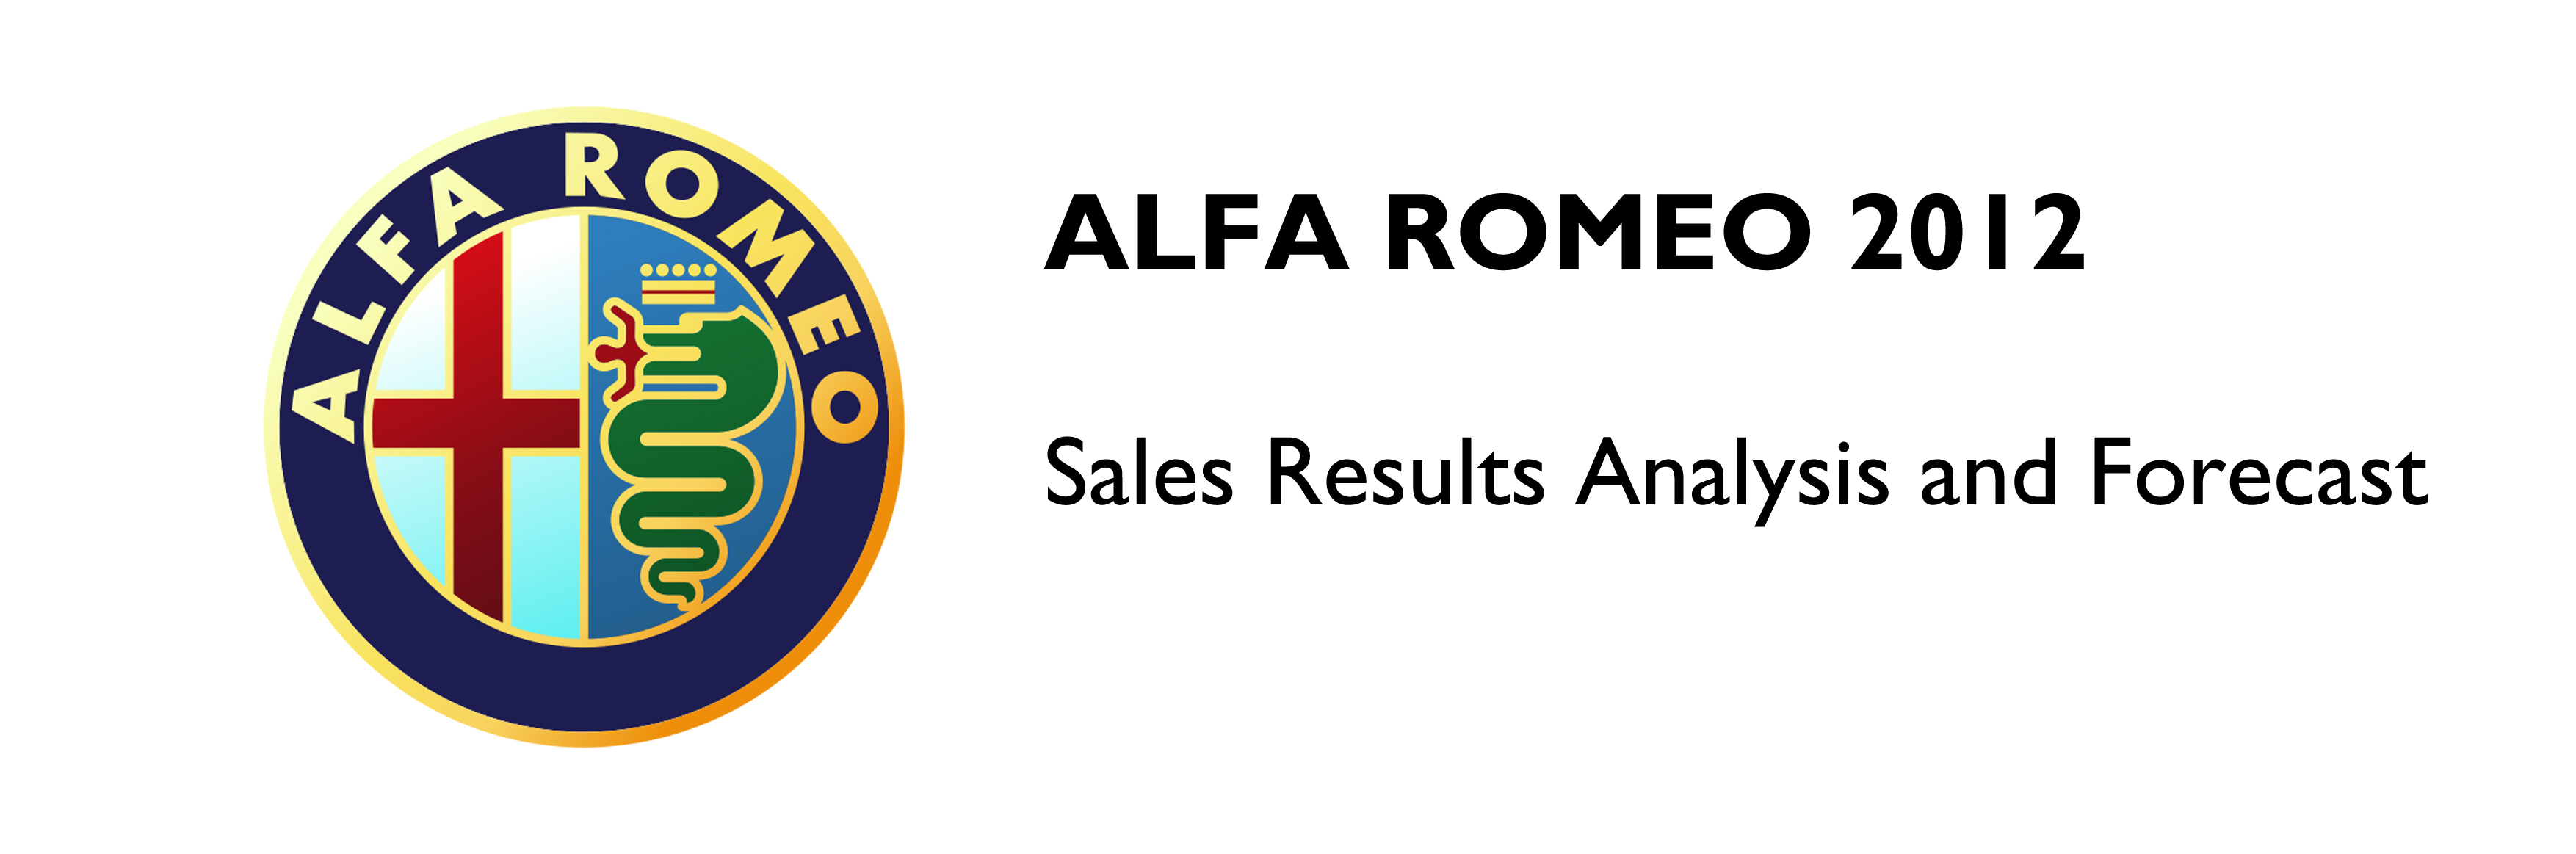 Alfa Romeo Sales 2012 Full Year Analysis